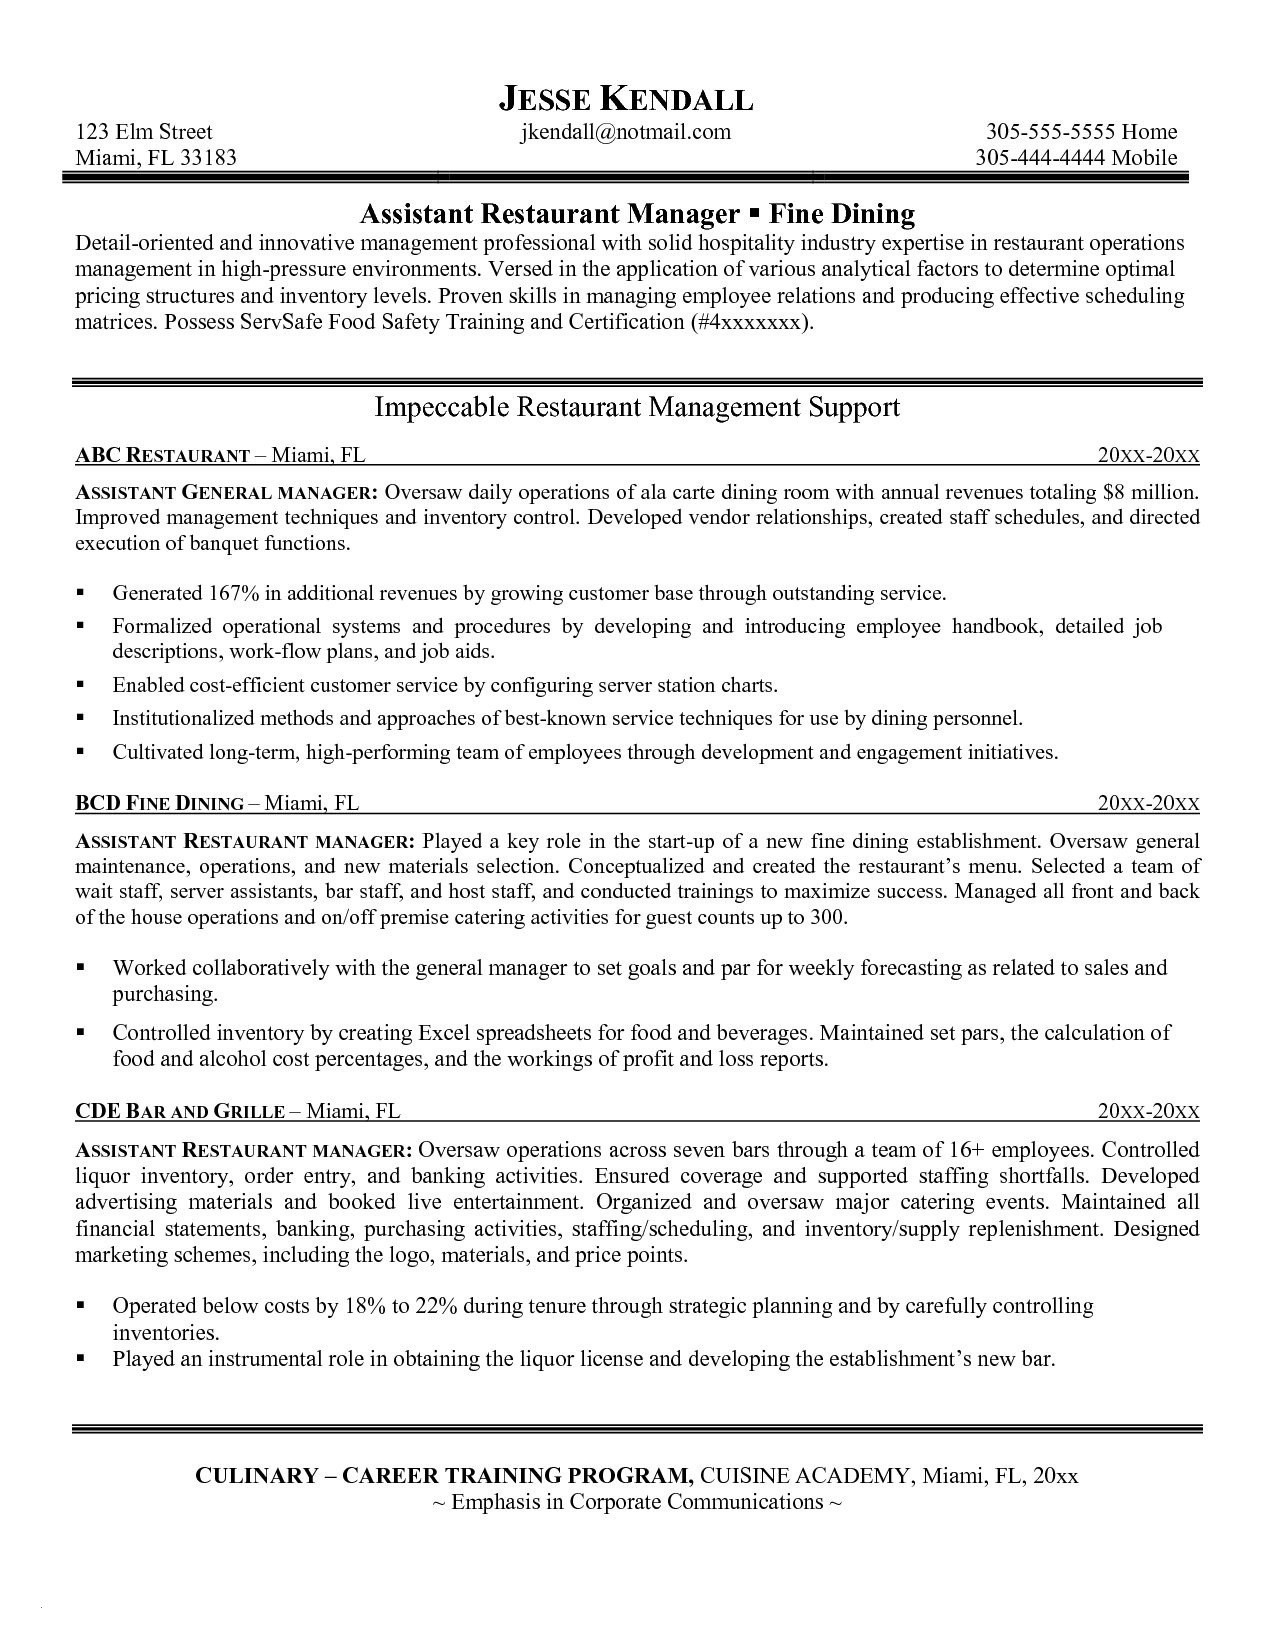 Restaurant Manager Resume Template Microsoft Word - Restaurant Manager Resume Sample Free Valid Resume Template for